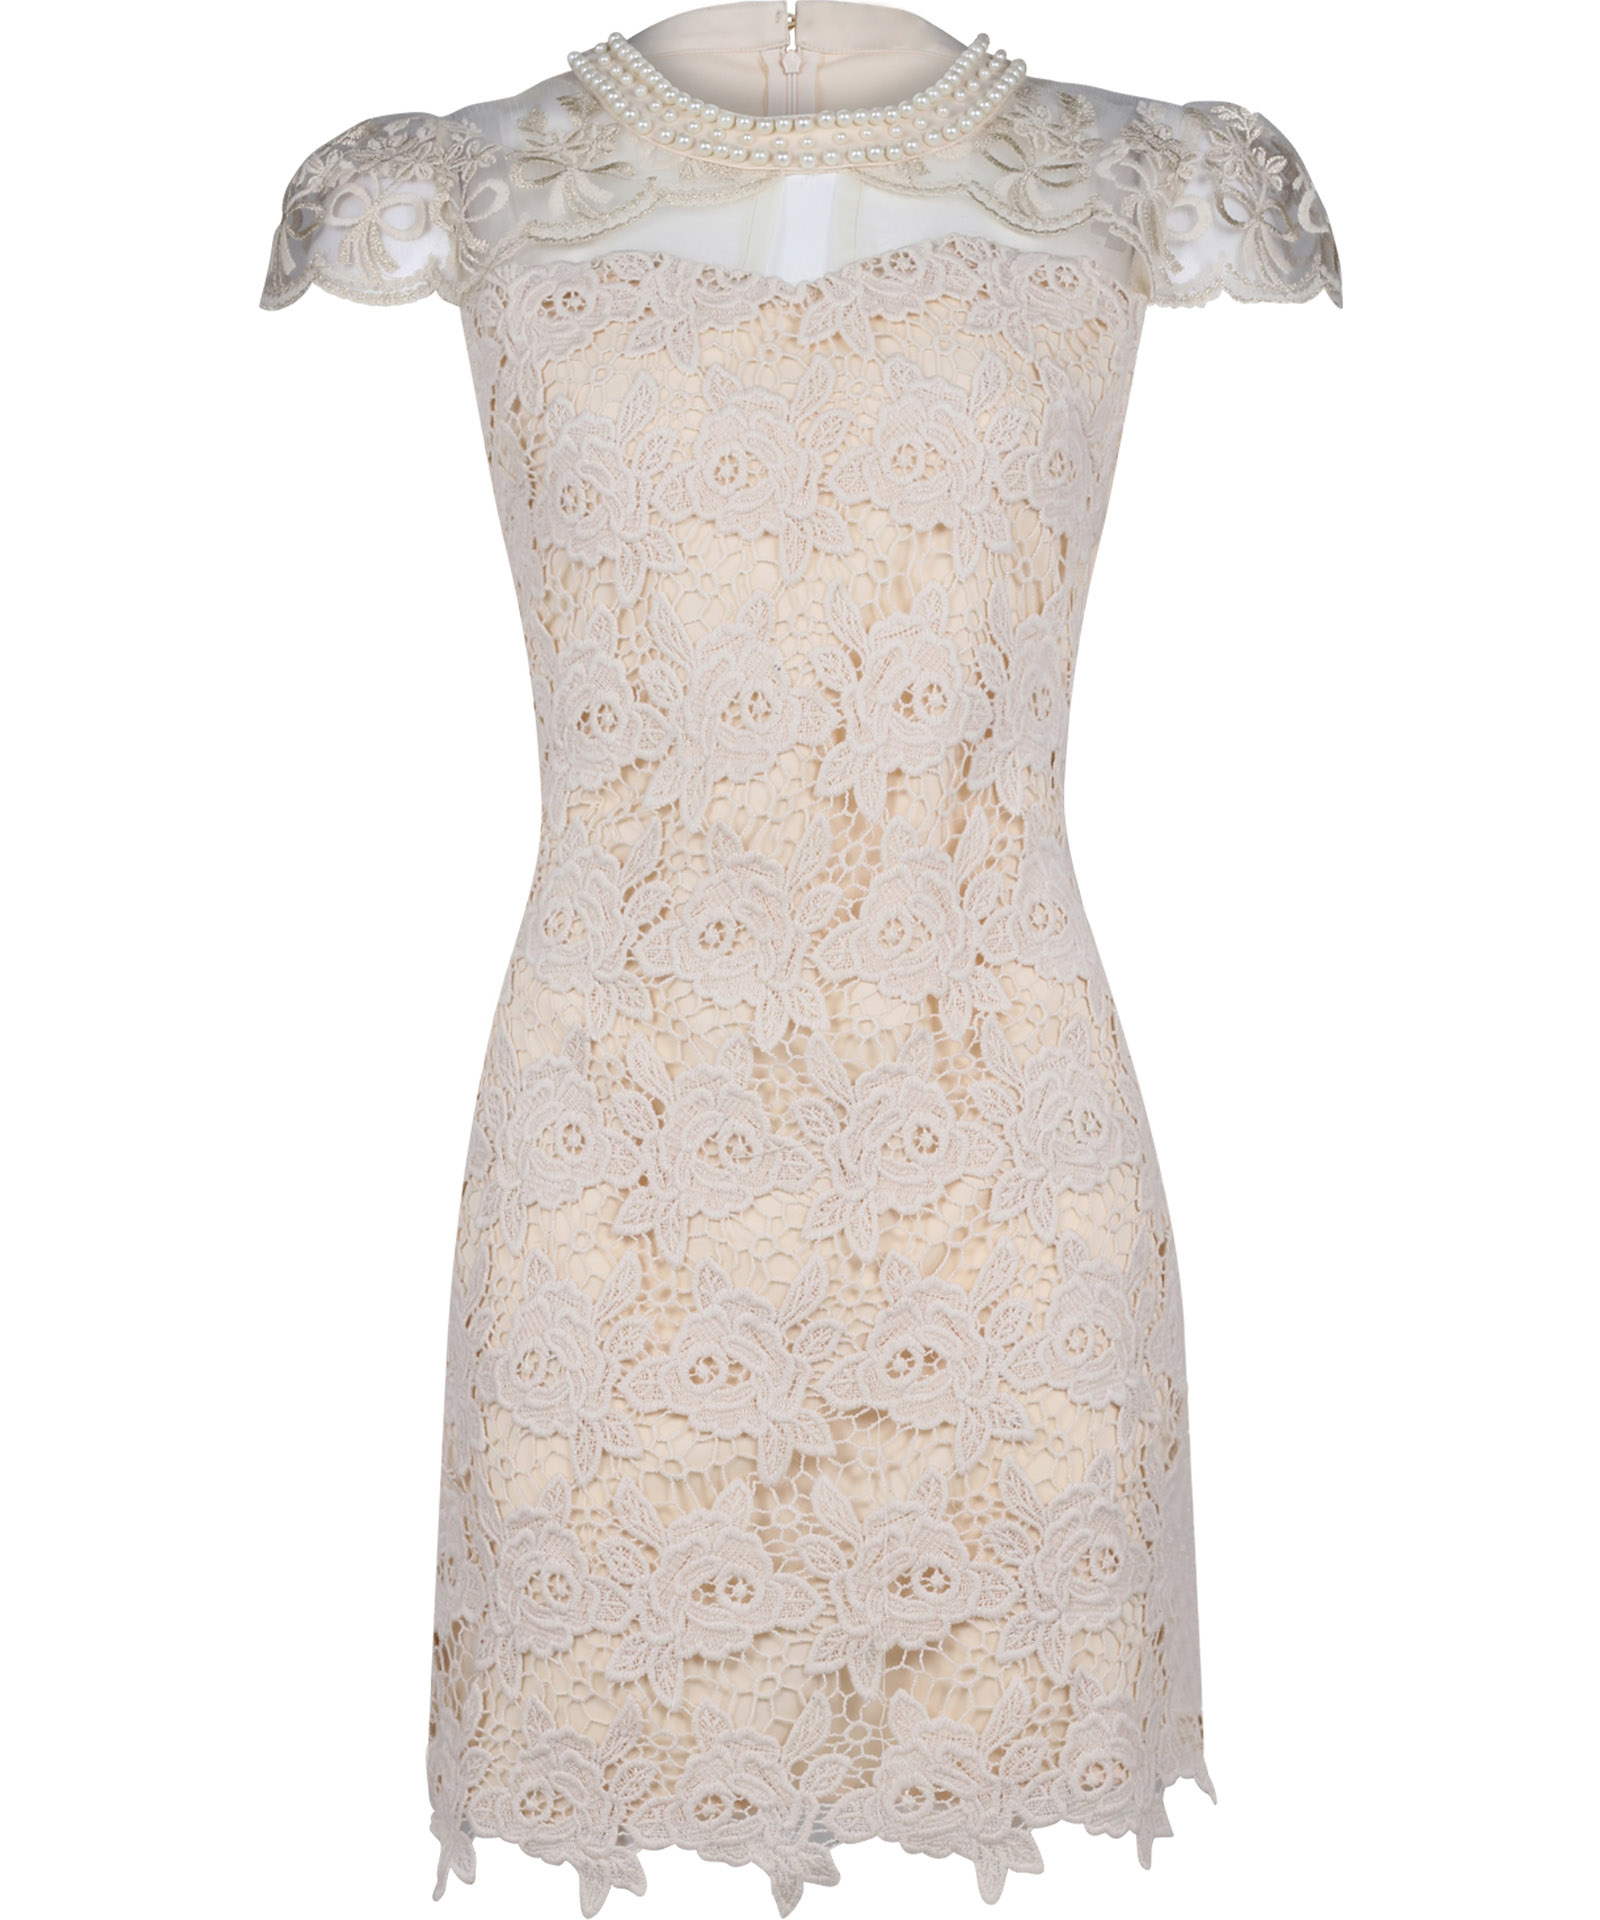 View Item Embroidered Shift Dress Crochet Dress Party Dress Evening Dress By Own The Runway